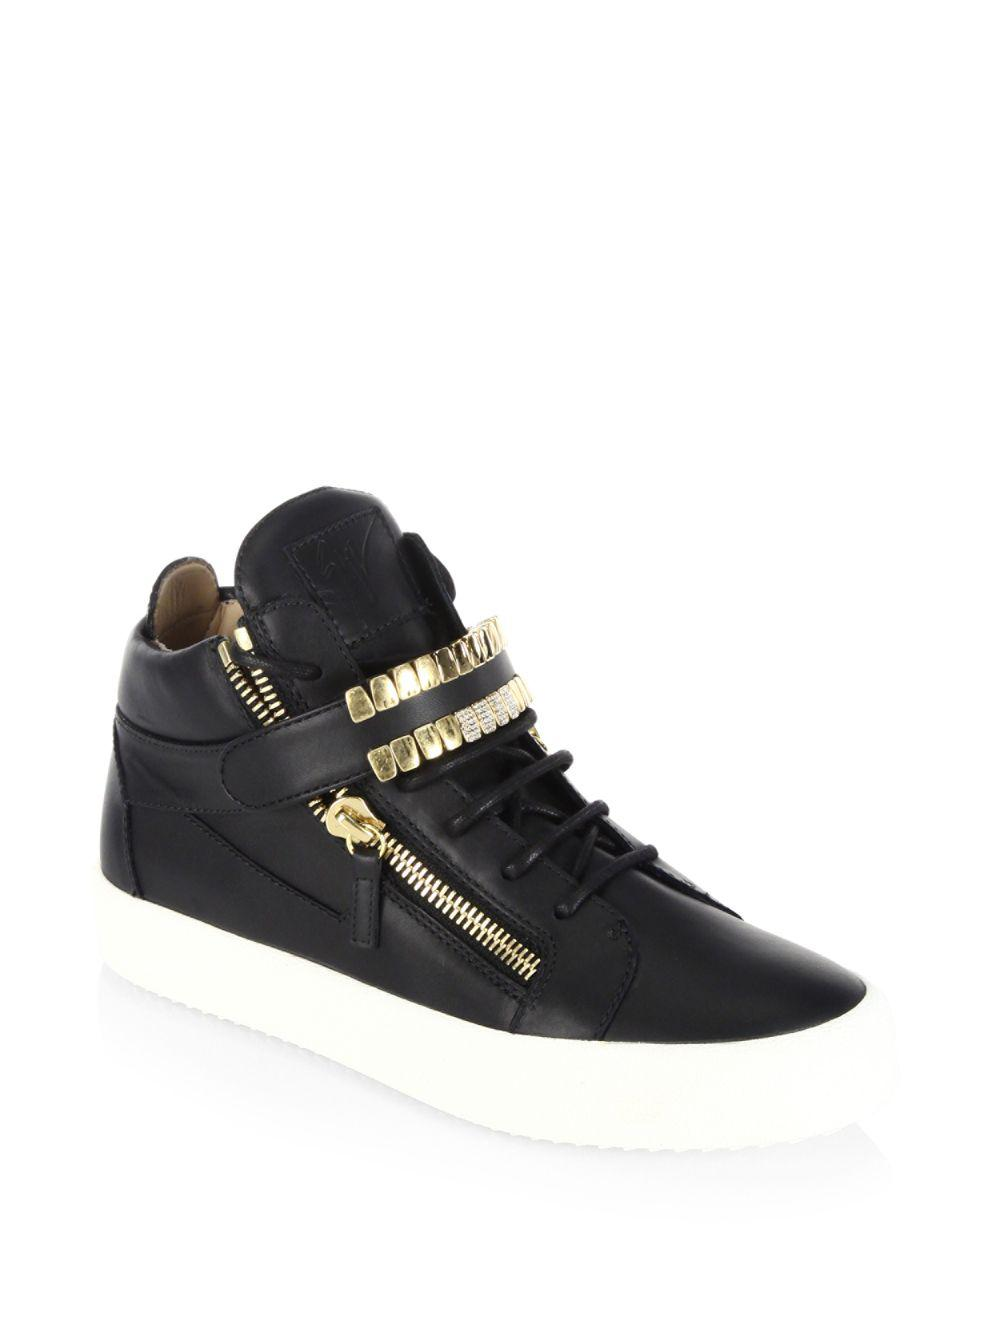 1c16925454f Giuseppe Zanotti Leather Sneakers in Black for Men - Save 13% - Lyst